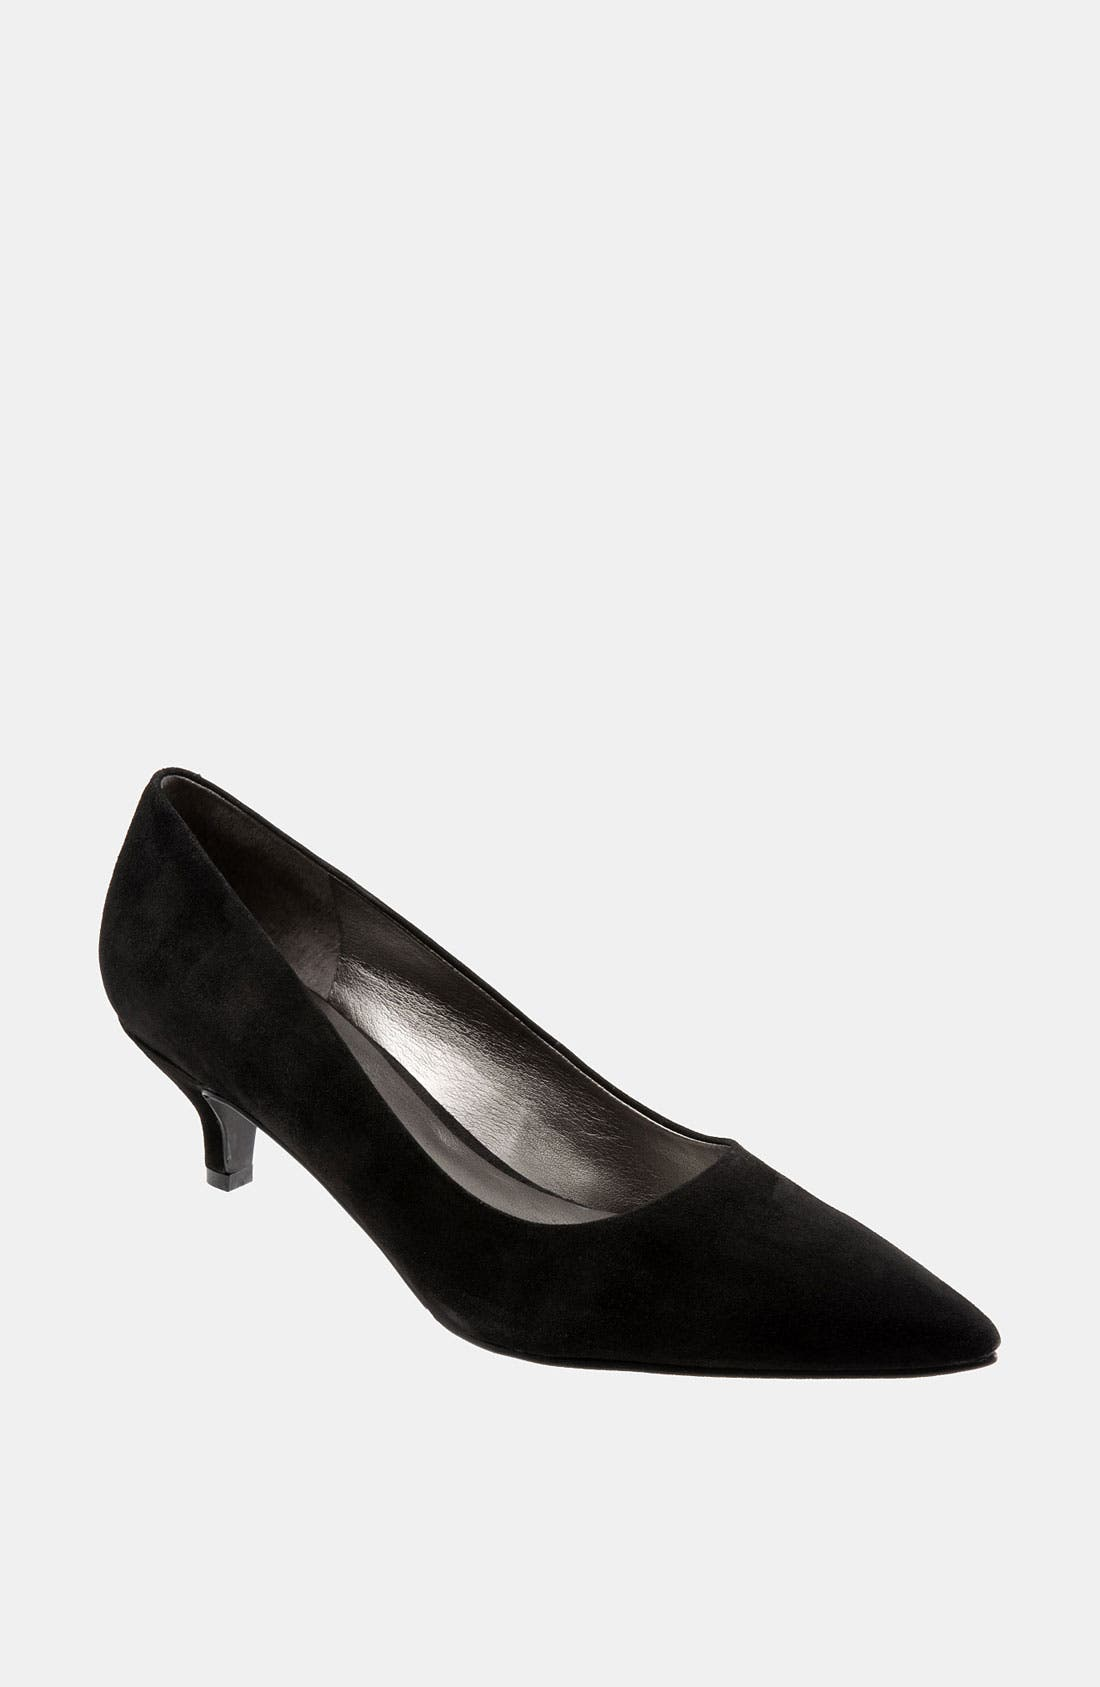 TROTTERS 'Paulina' Leather Pump, Main, color, 001